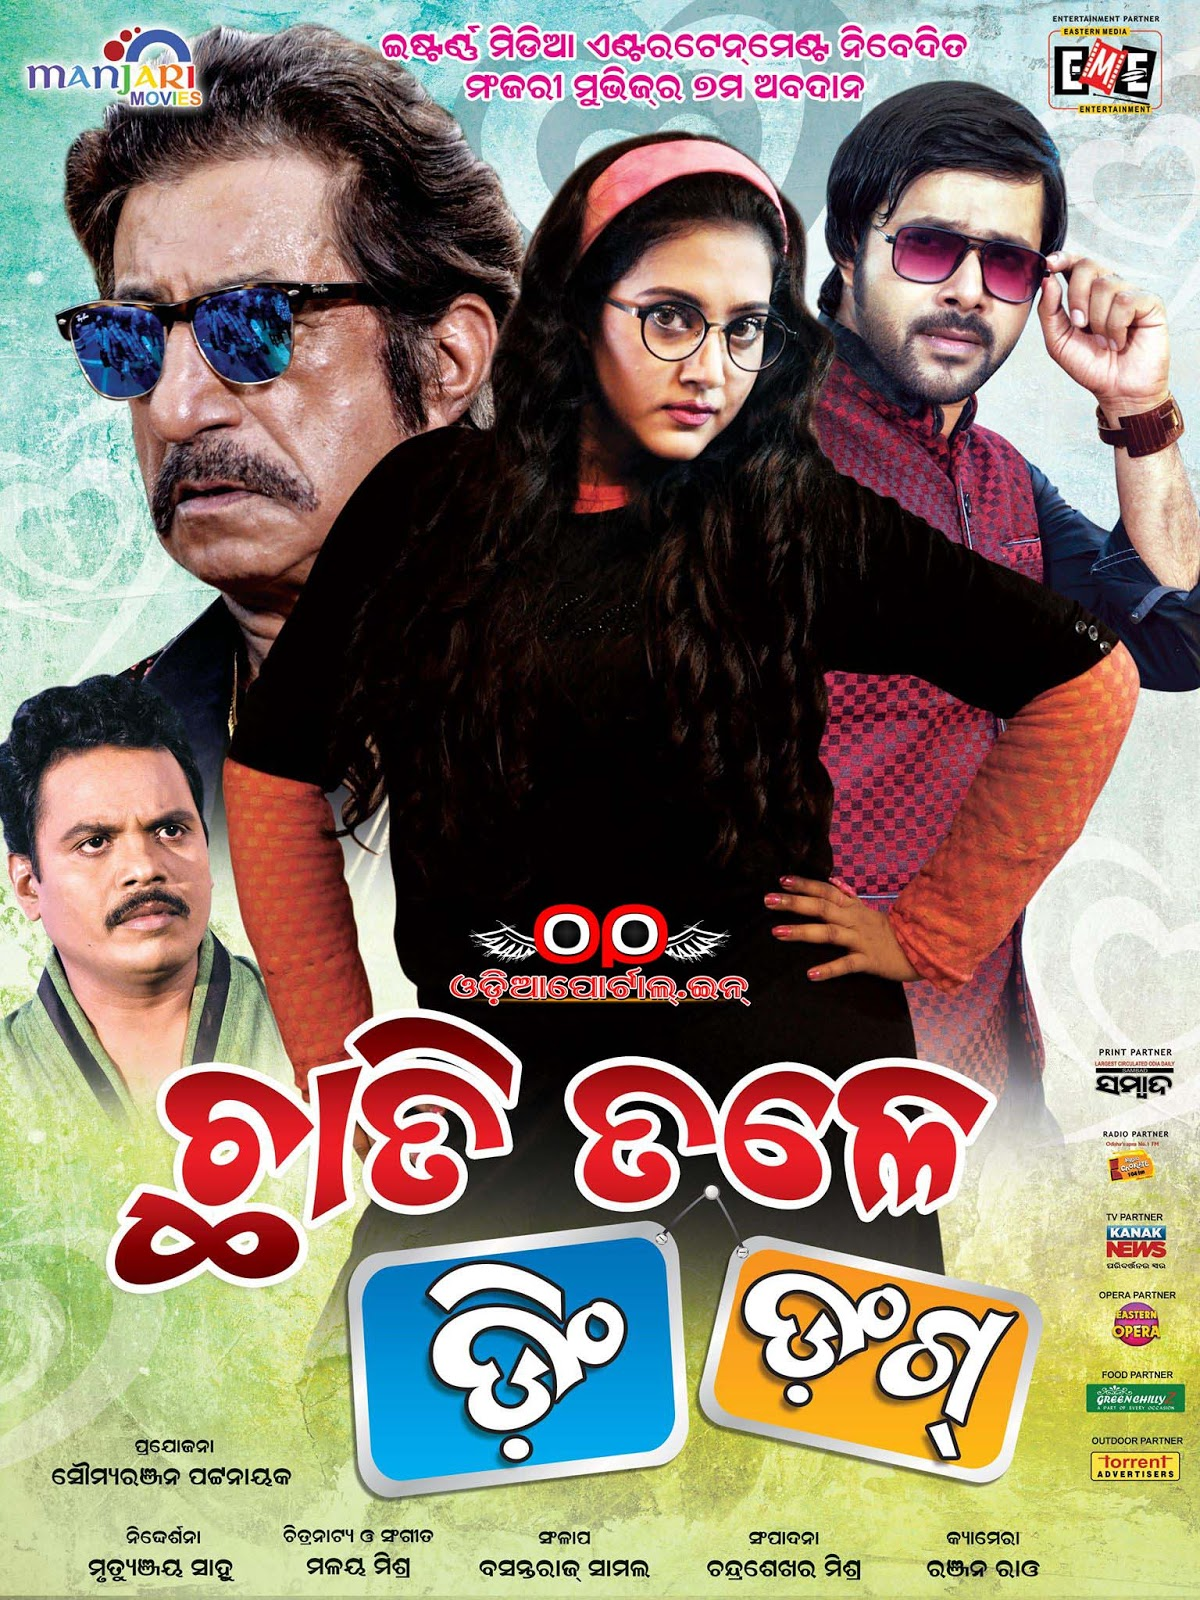 Ollywood Chhati Tale Ding Dong Odia Film - Cast, Crew -3625